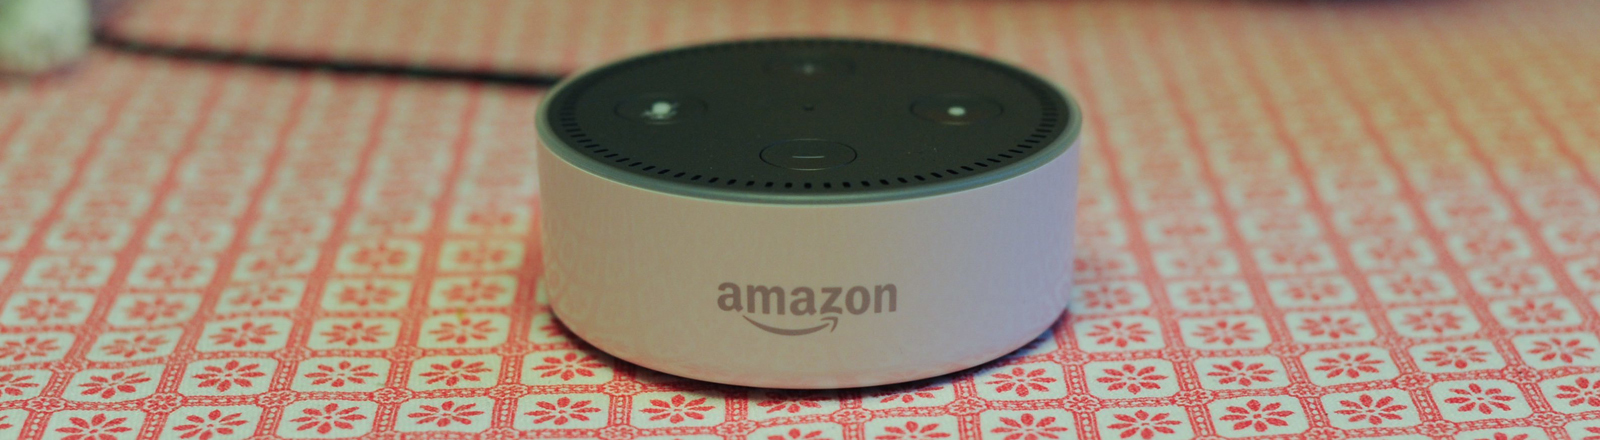 Alexa - Home Assistant von Amazon